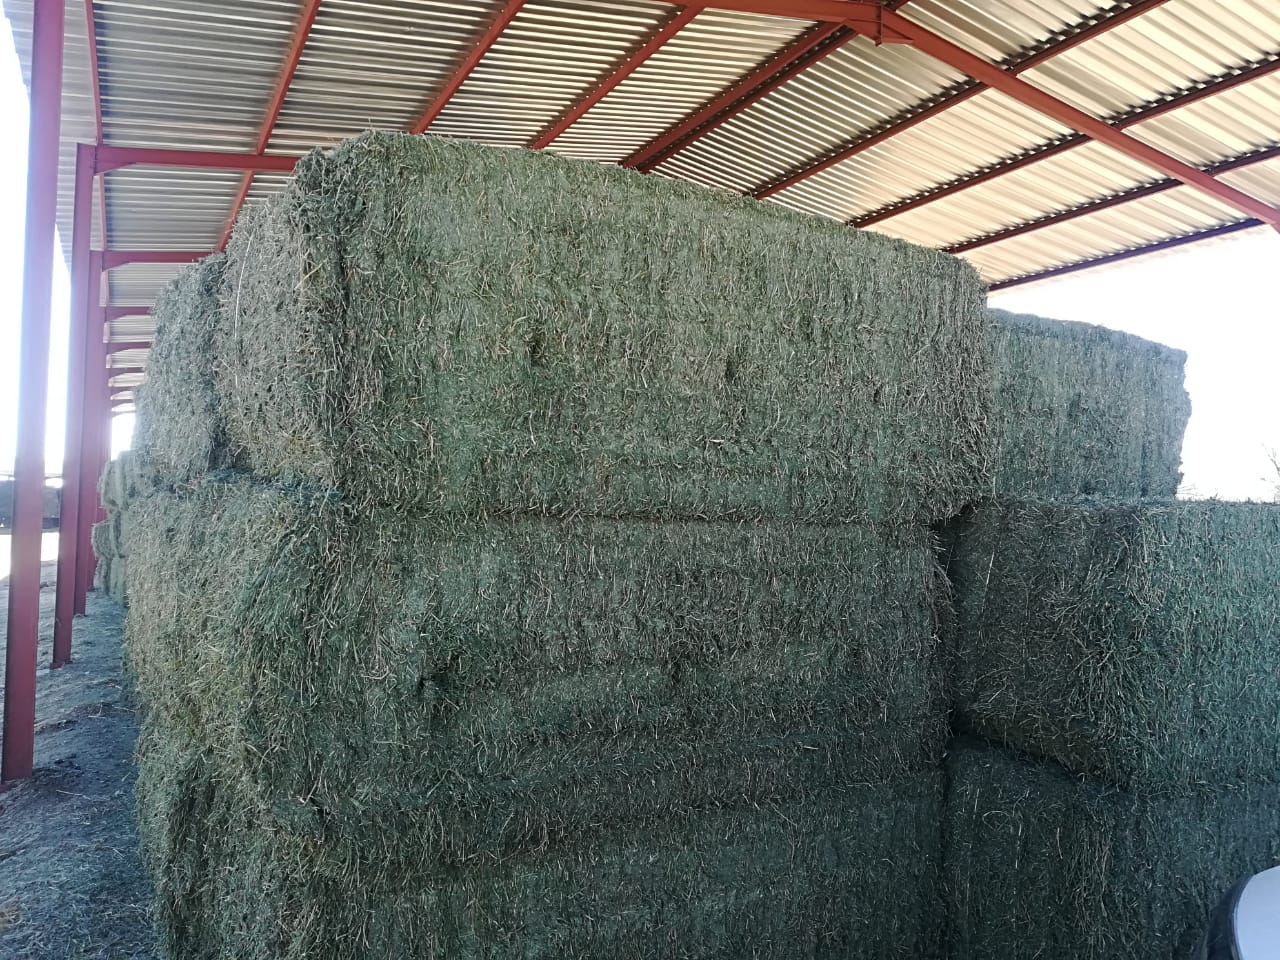 Lucerne bales and animal feeds